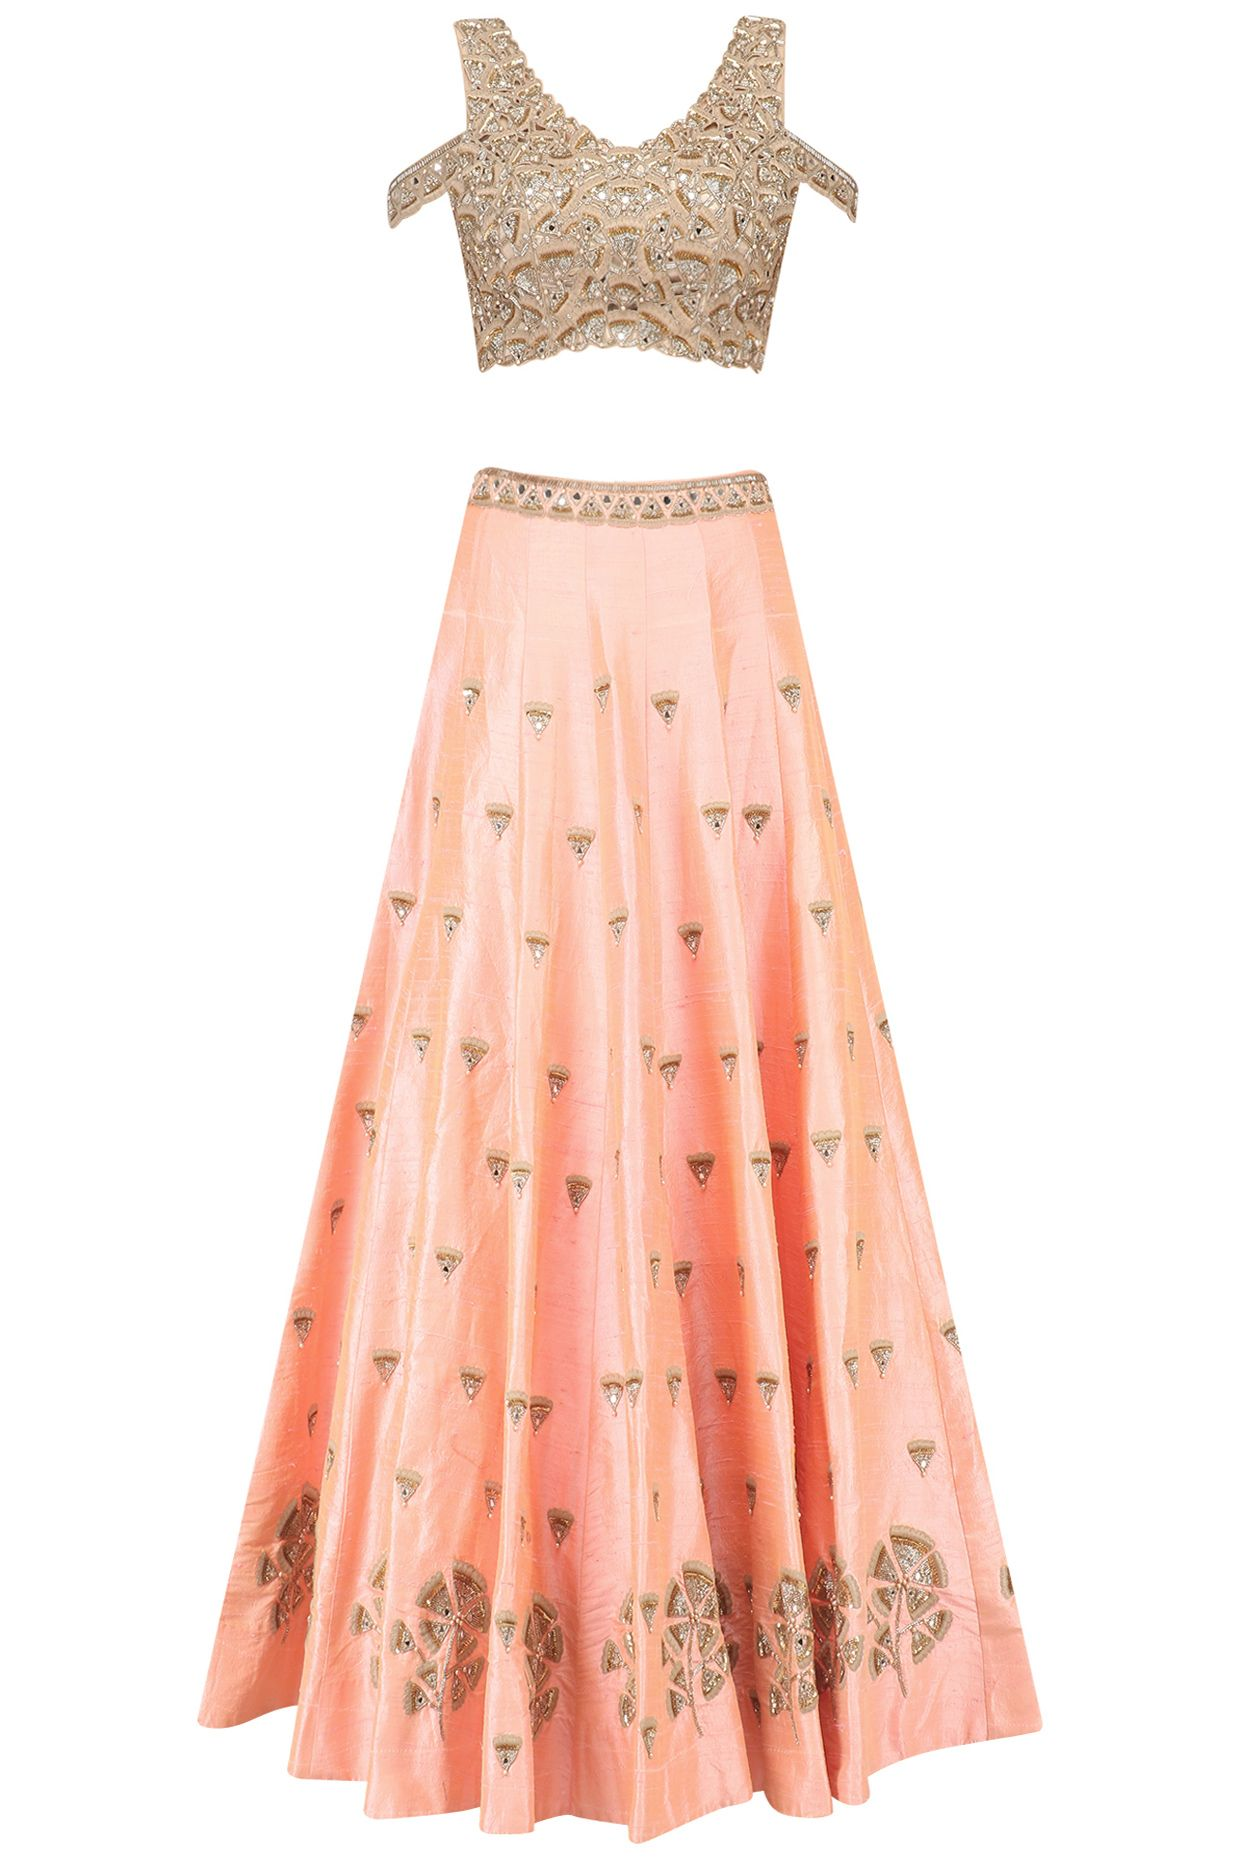 dff5fe192f8ee Nude Peach gingko embroidered lehenga skirt and cold shoulder blouse set  available only at Pernia s Pop Up Shop.